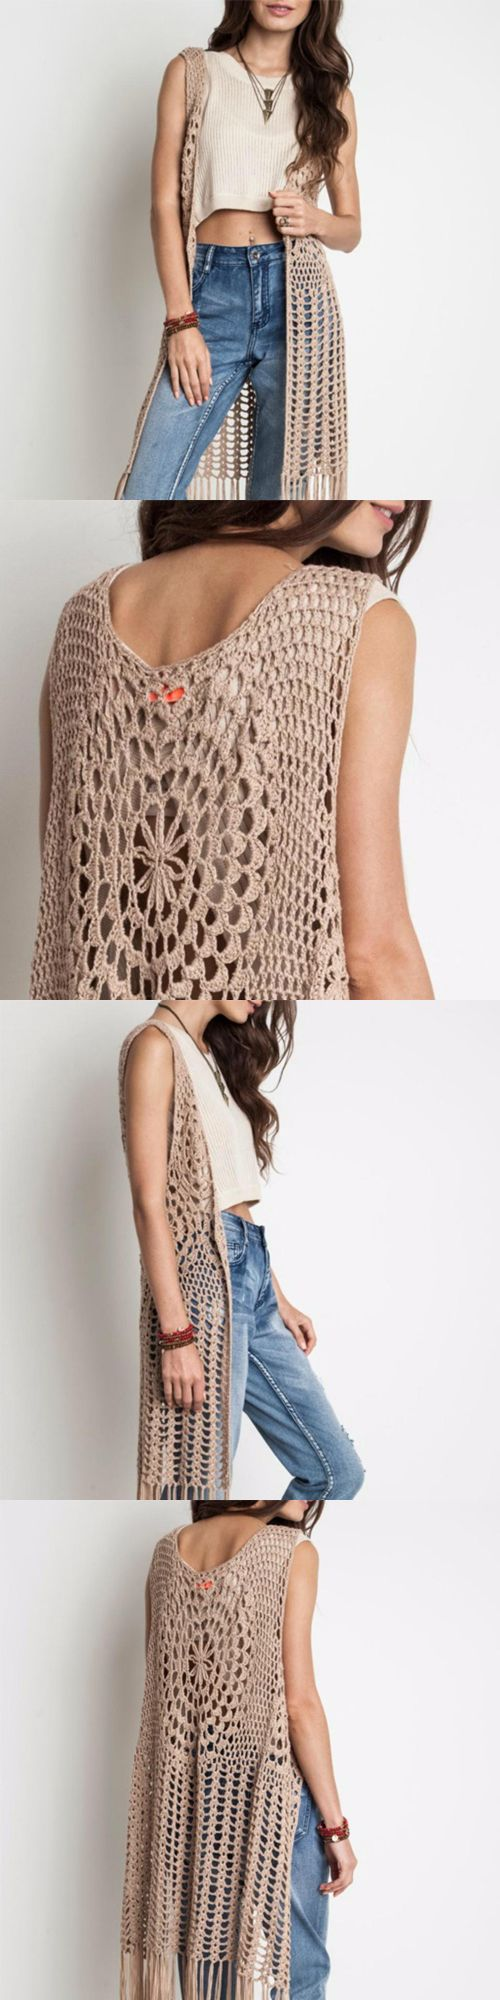 Umgee Natural Taupe Solid Cotton Bohemian Crochet Harlow Vest. This Fringe Vest Is So Perfect For That Extra Pop Of Interest To Any Outfit. Can Be Worn Nicely With Denim And Boots Or With A Dress And Wedges. #TheseQuietSounds #Umgee